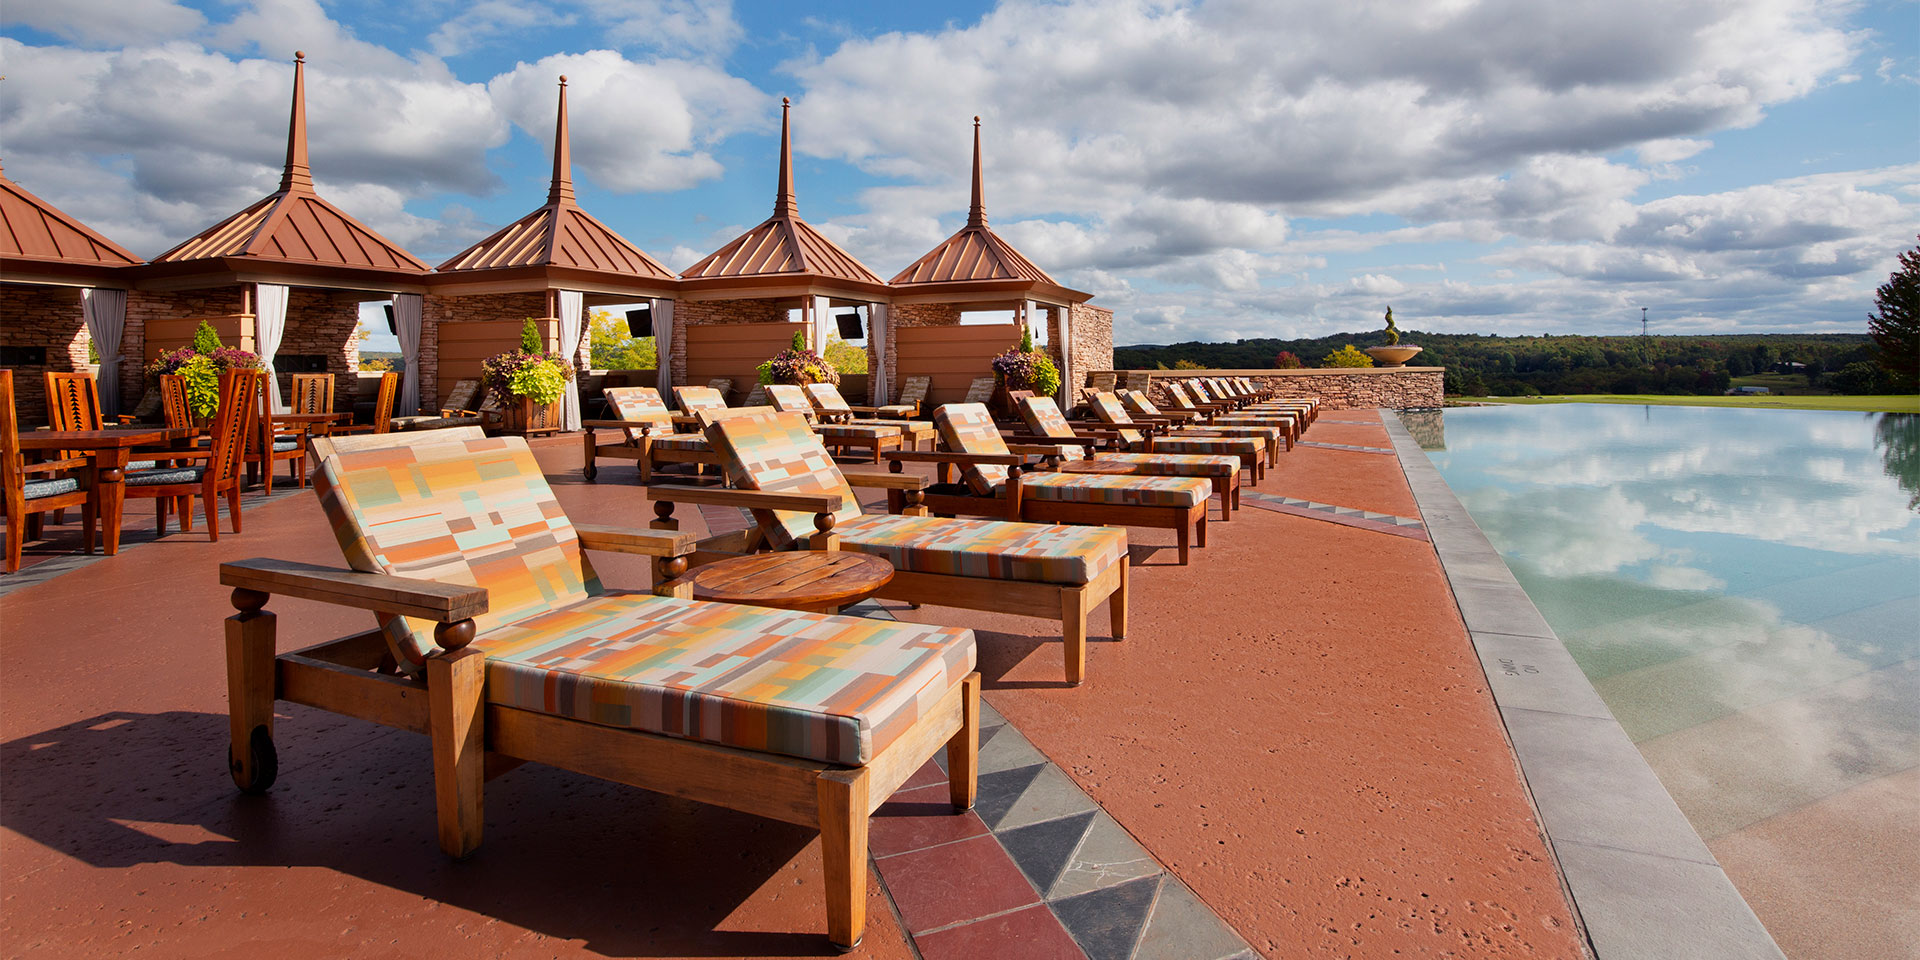 poolside chairs and cabanas